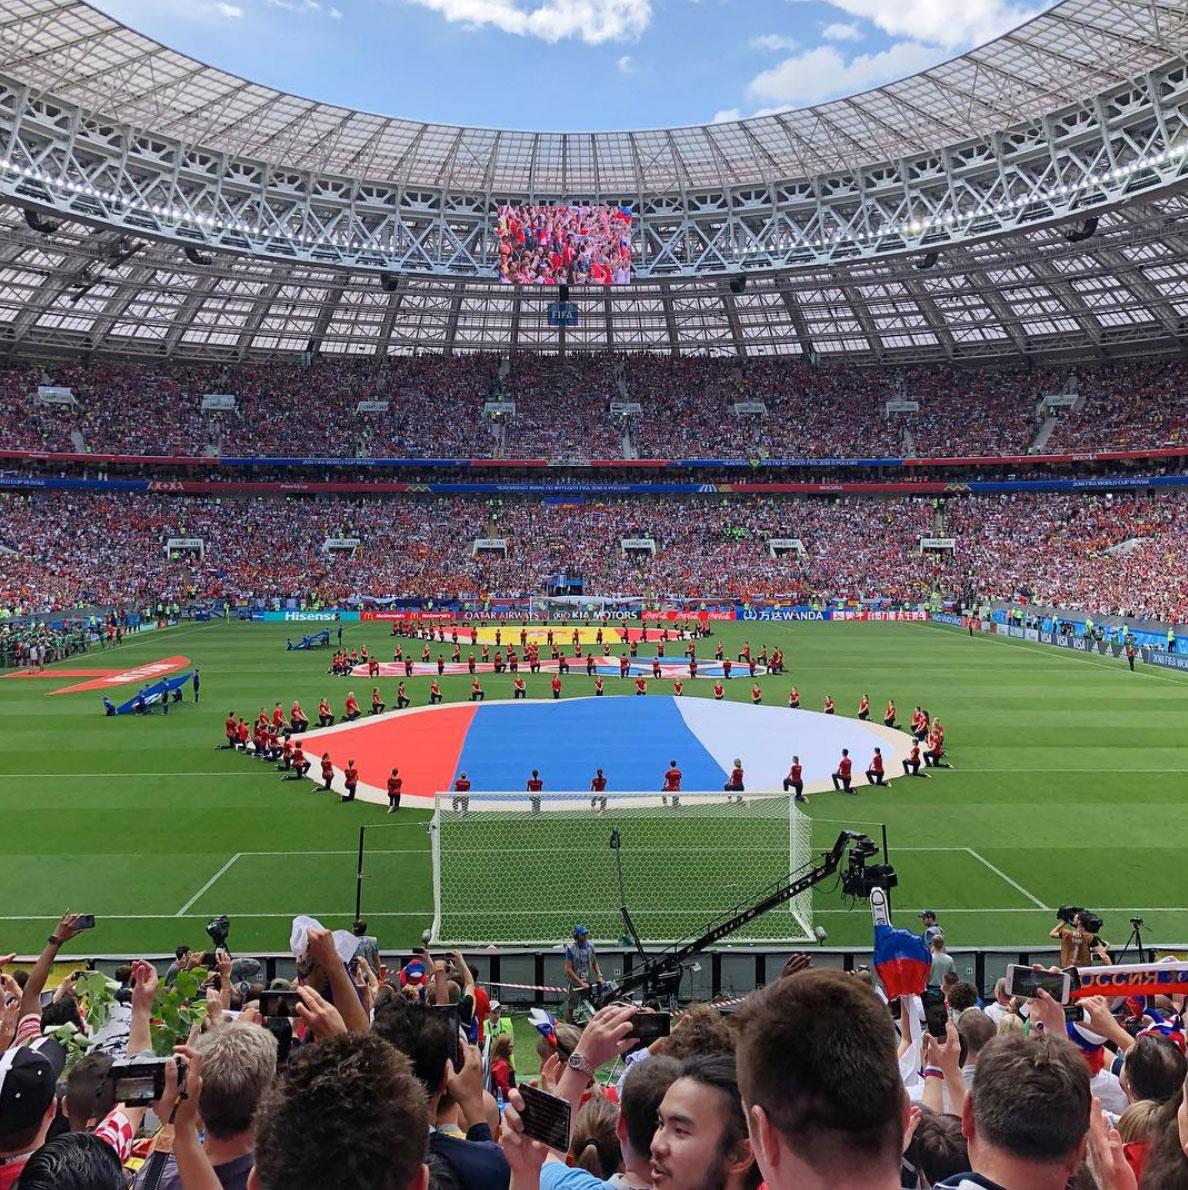 Russia vs Spain on the Fifa World Cup 2018